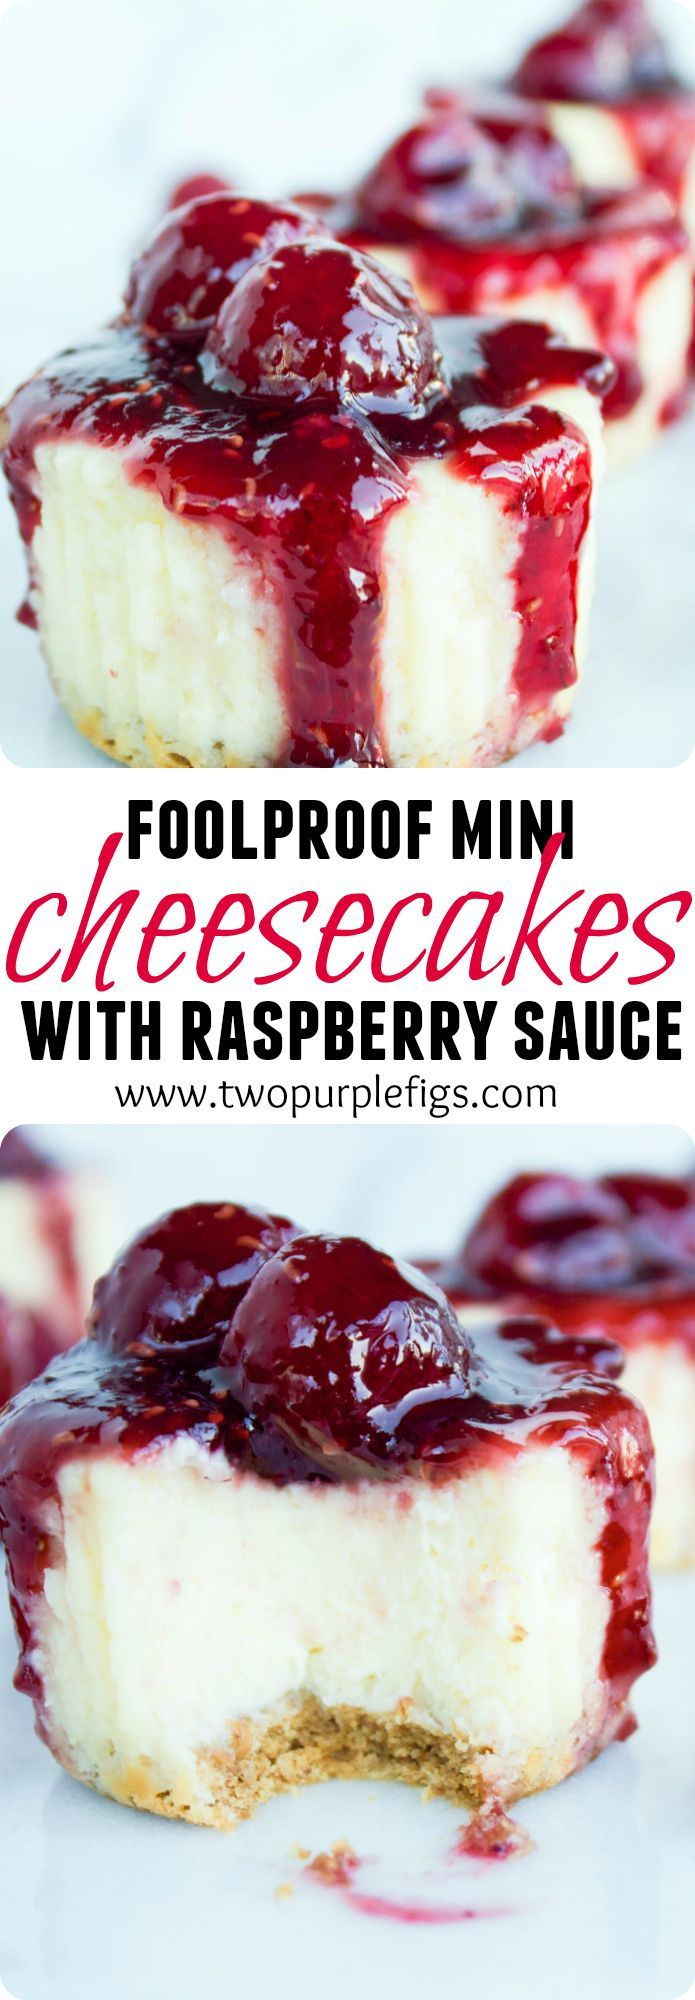 Mini Raspberry Cheesecakes. Get the recipe for a fool proof way to master the PERFECT cheesecake--no hassle no water bath no fuss! Easy straight forward and DIVINE cheesecake at your finger tips! A HIT recipe every single time! http://www.twopurplefigs.com